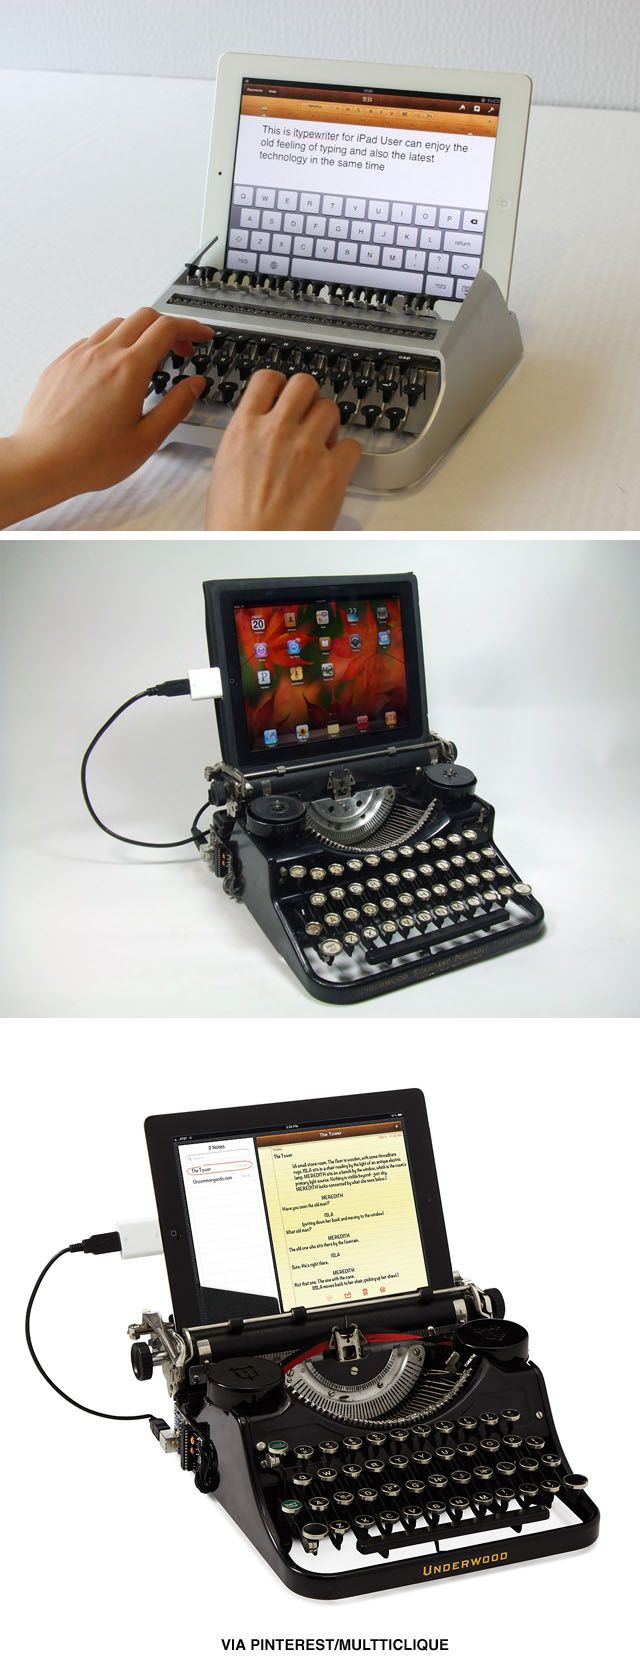 If you not-so-secretly wish you lived in the 1950s, this unique tablet accessory might be for you. When you pull this gadget out at the coffee shop you're sure to get some envious looks!